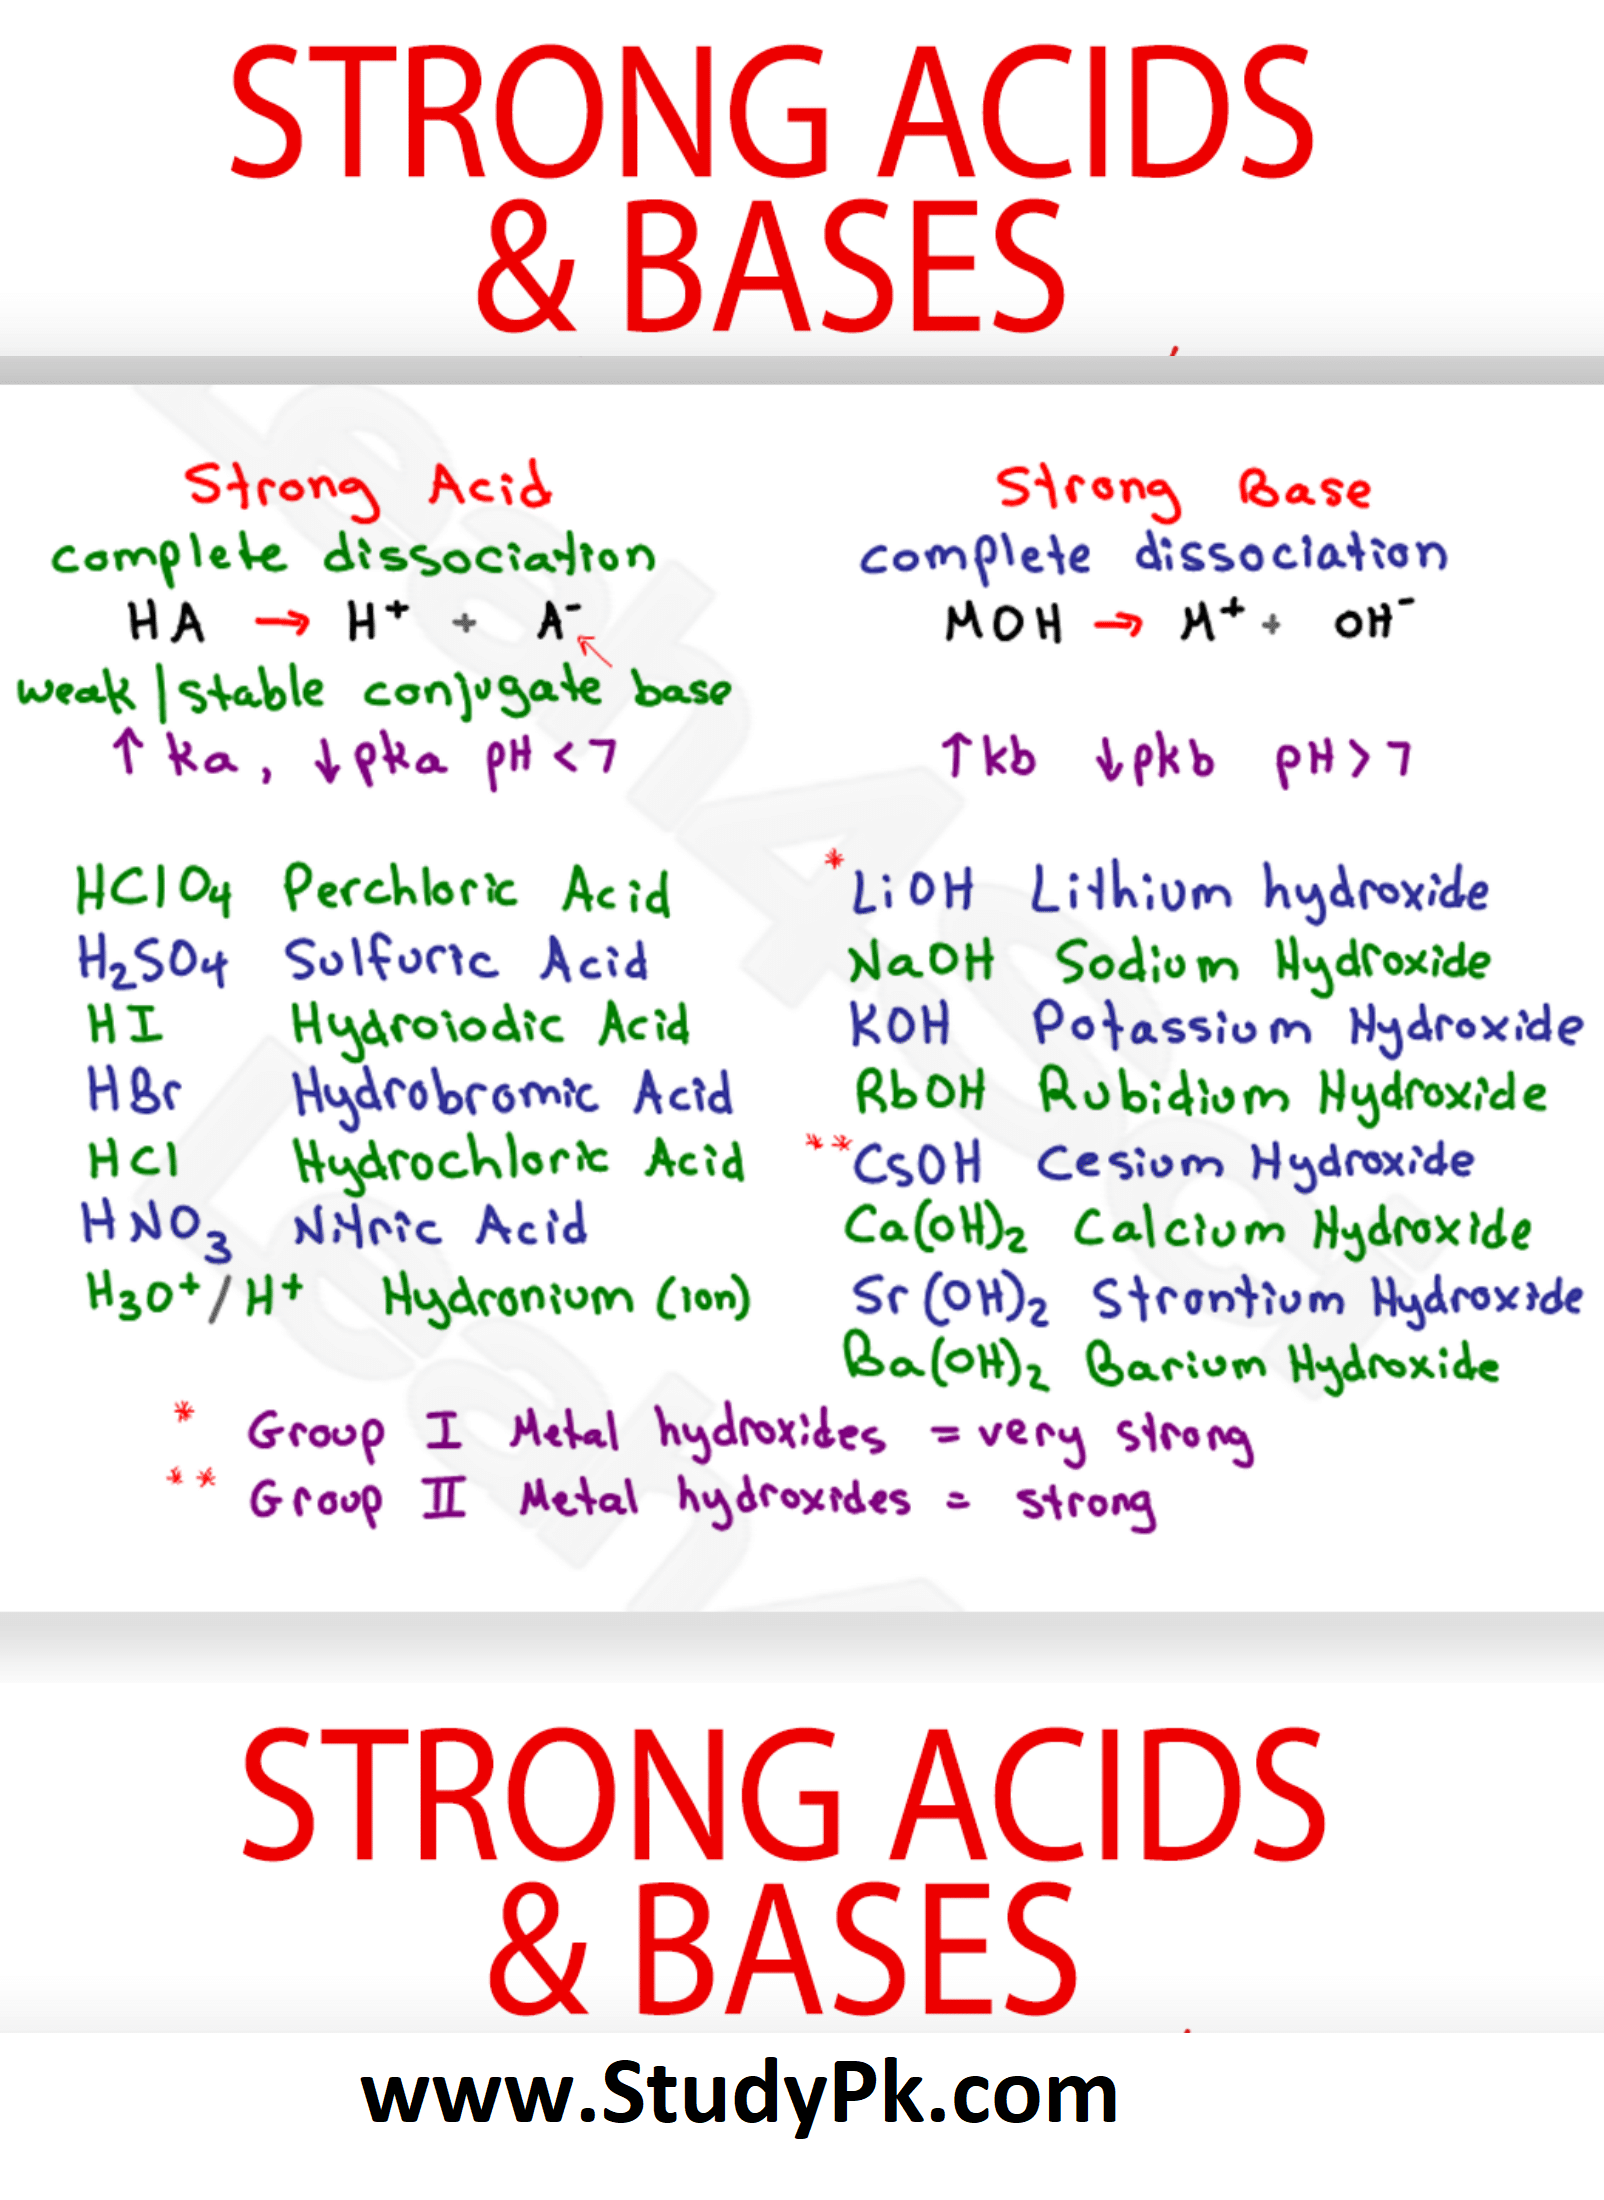 Strong Acids and Bases MCAT Chemistry Cheat Sheet Study ...